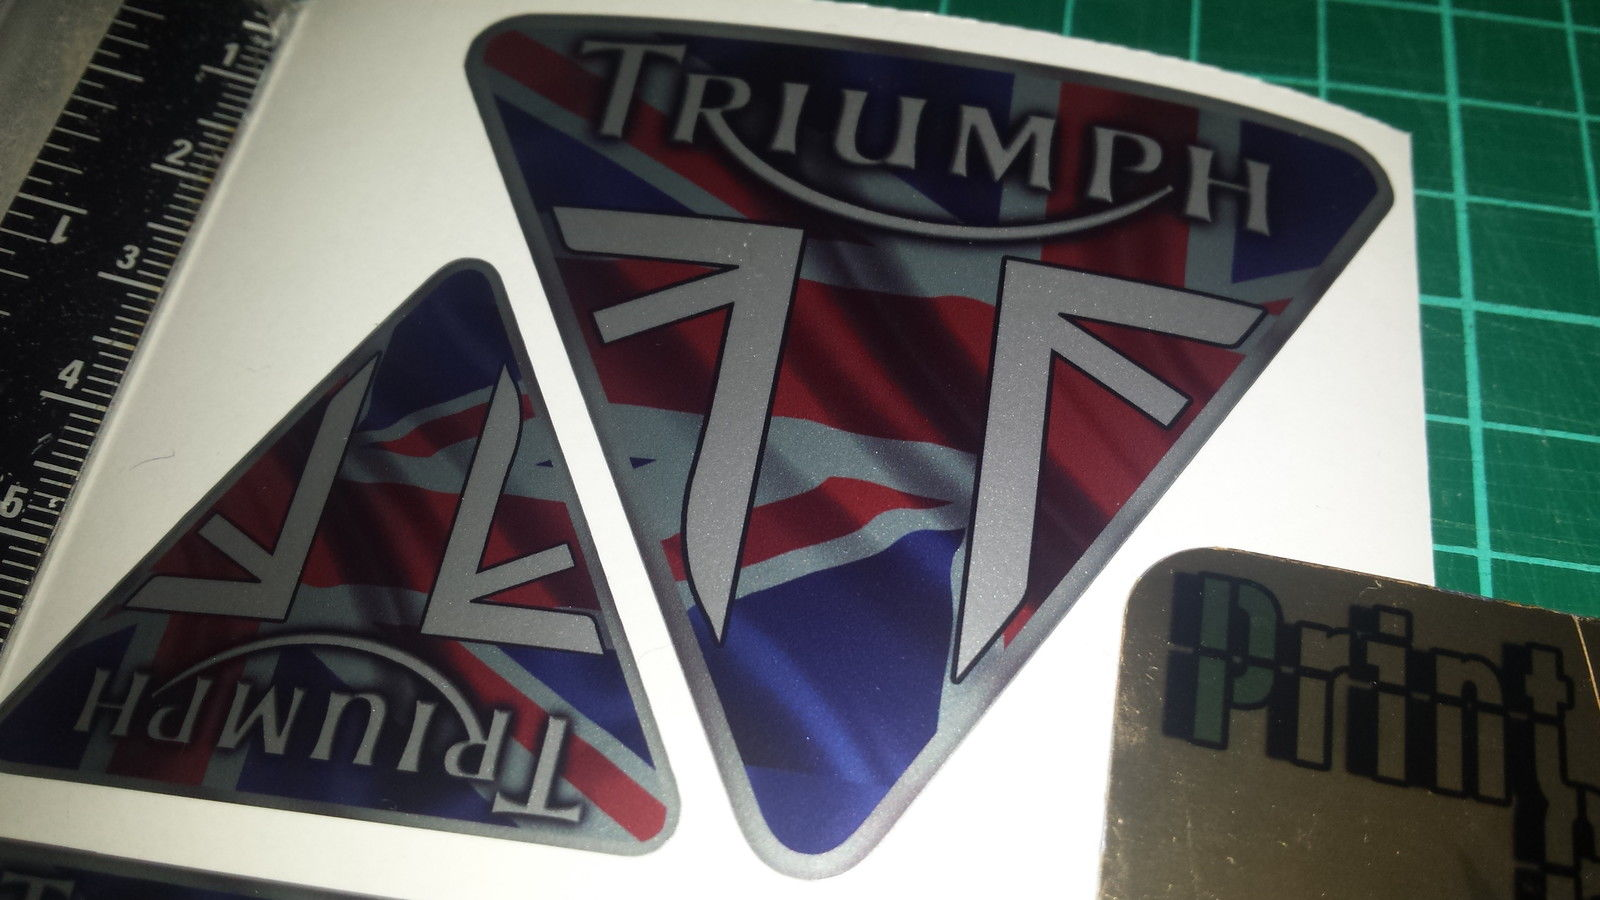 Triumph Tank Decals X4 Union Jack Style Tiger Trophy Speed